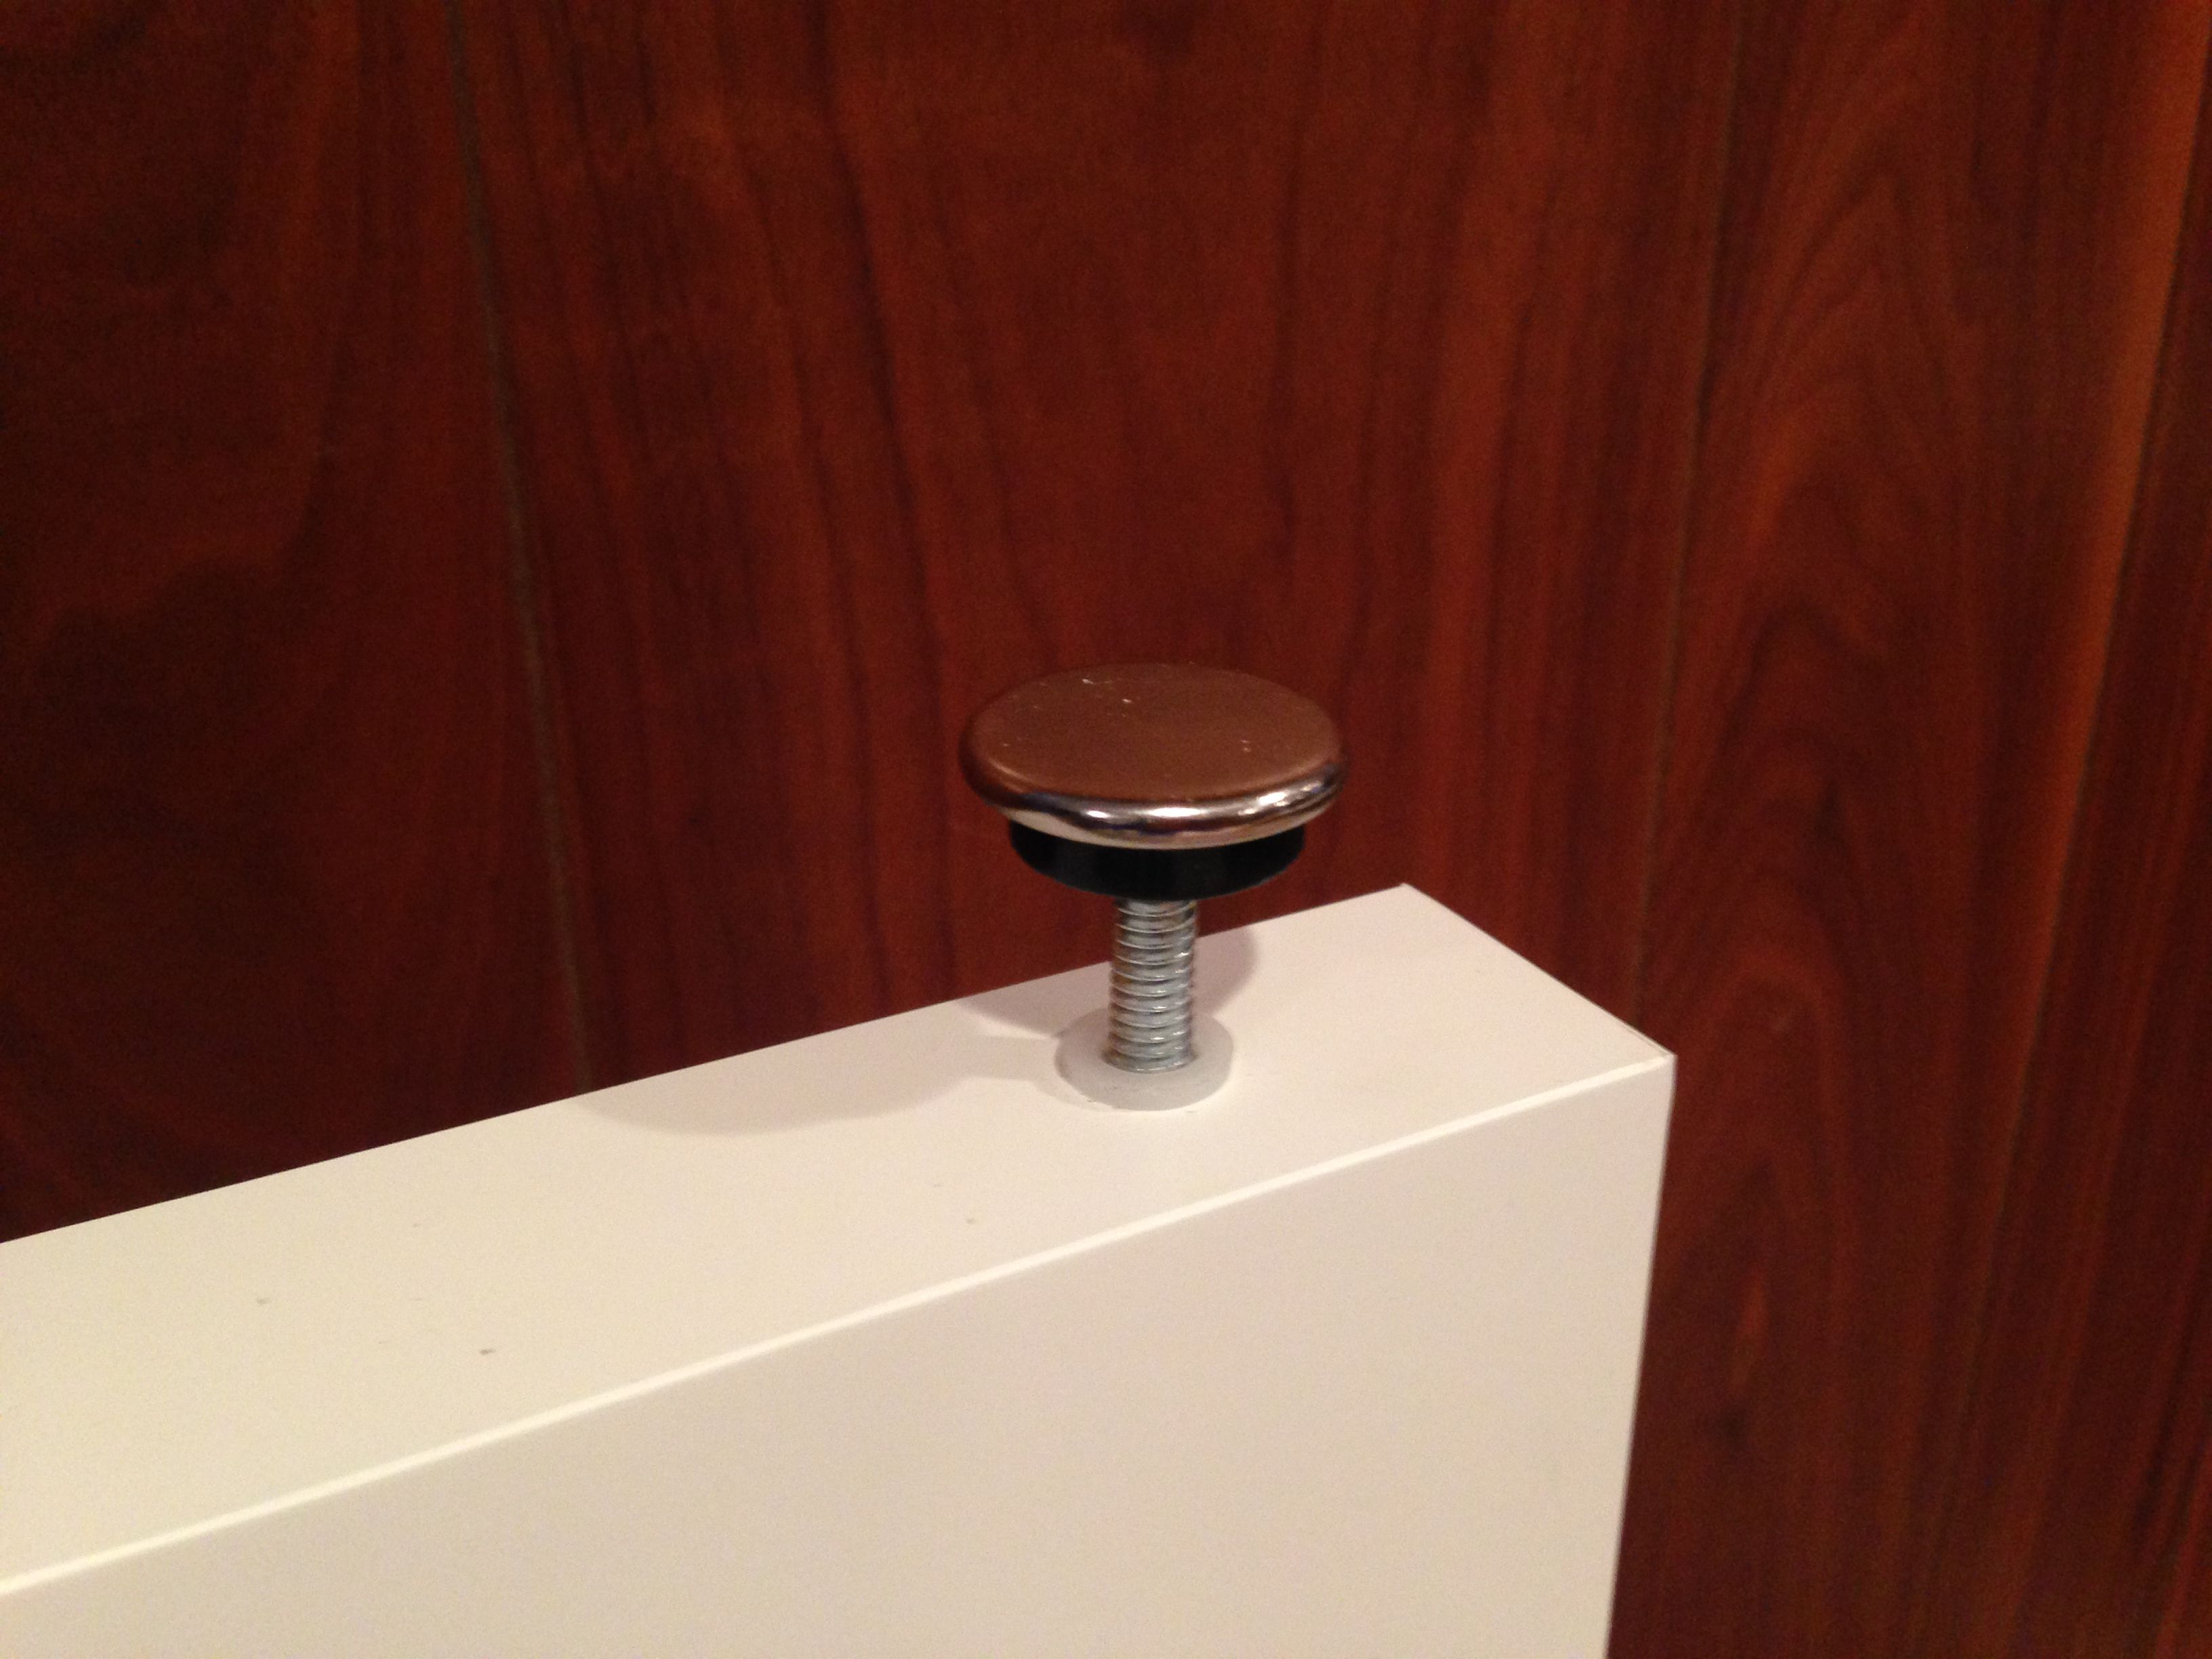 Use Ikea Linnmon Tabletops To Build Countertop Over Washer And